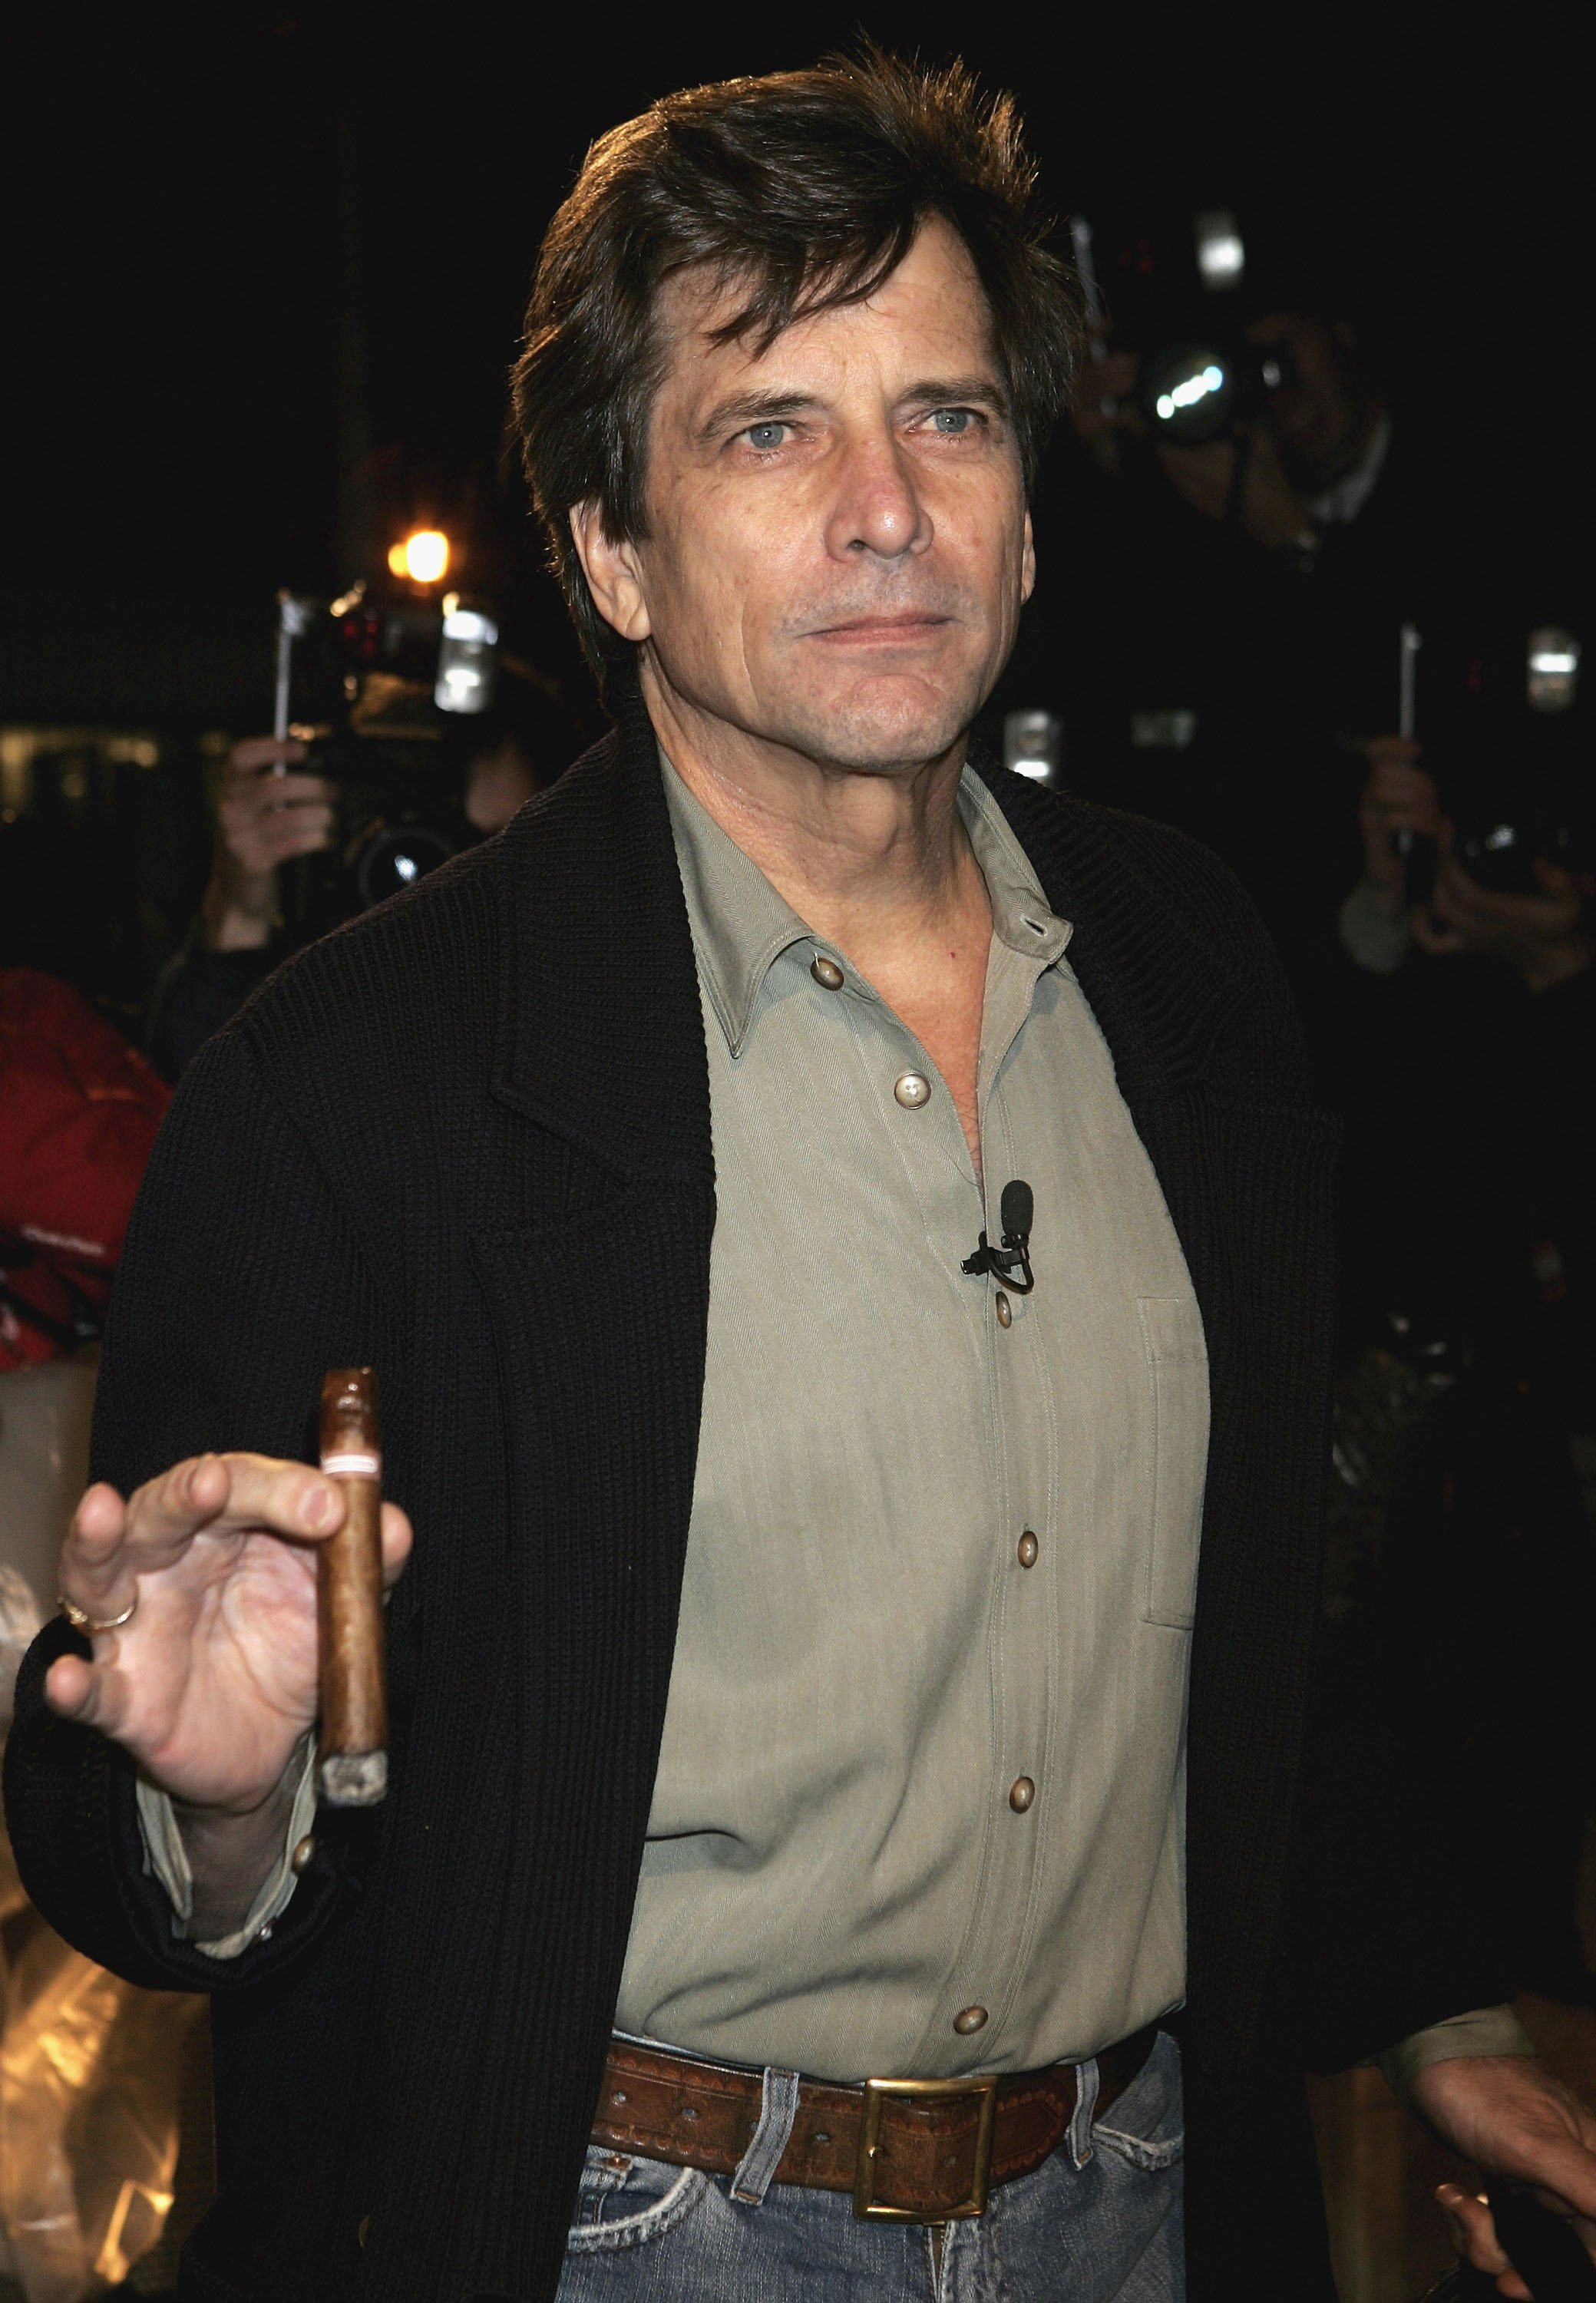 Dirk Benedict arrives for Celebrity Big Brother series on Jan. 3, 2006 | Source: Getty Images